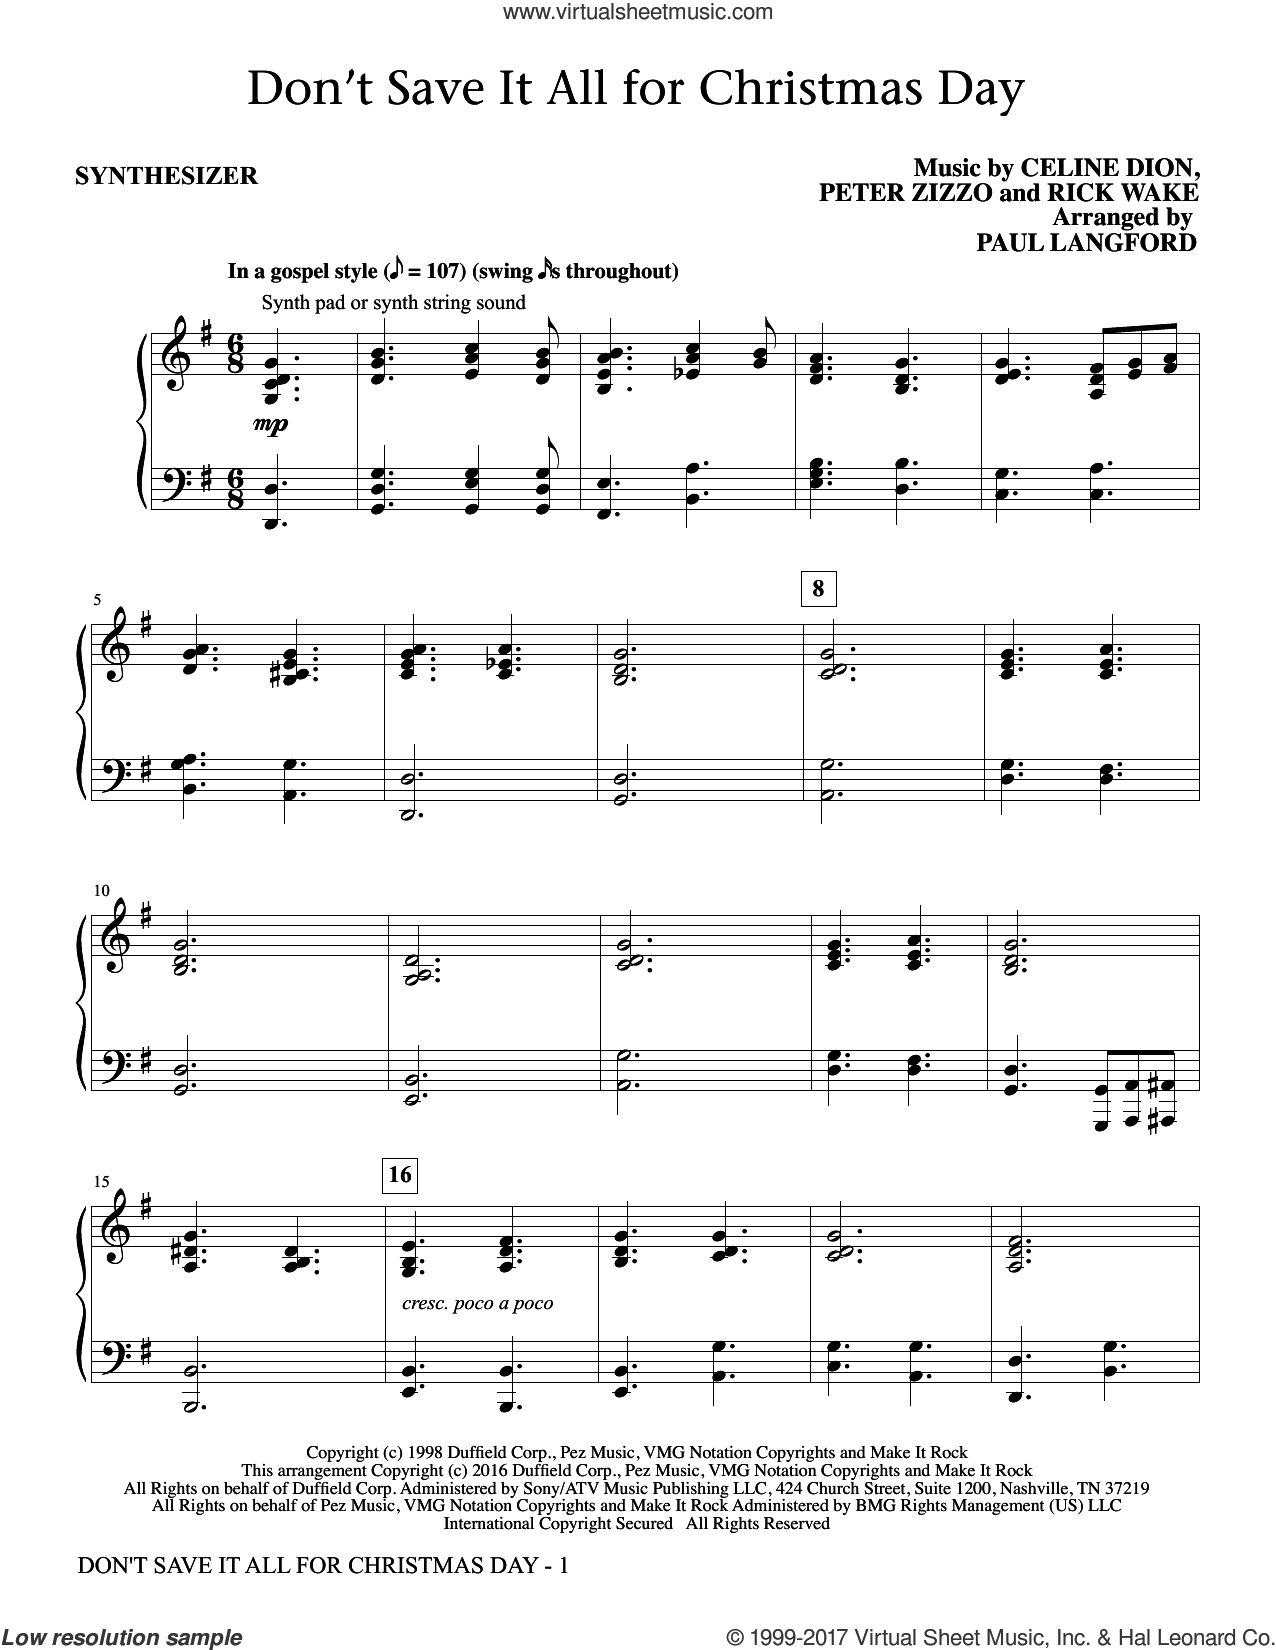 Don't Save It All for Christmas Day (complete set of parts) sheet music for orchestra/band by Celine Dion, Avalon, Paul Langford, Peter Zizzo and Ric Wake, intermediate skill level